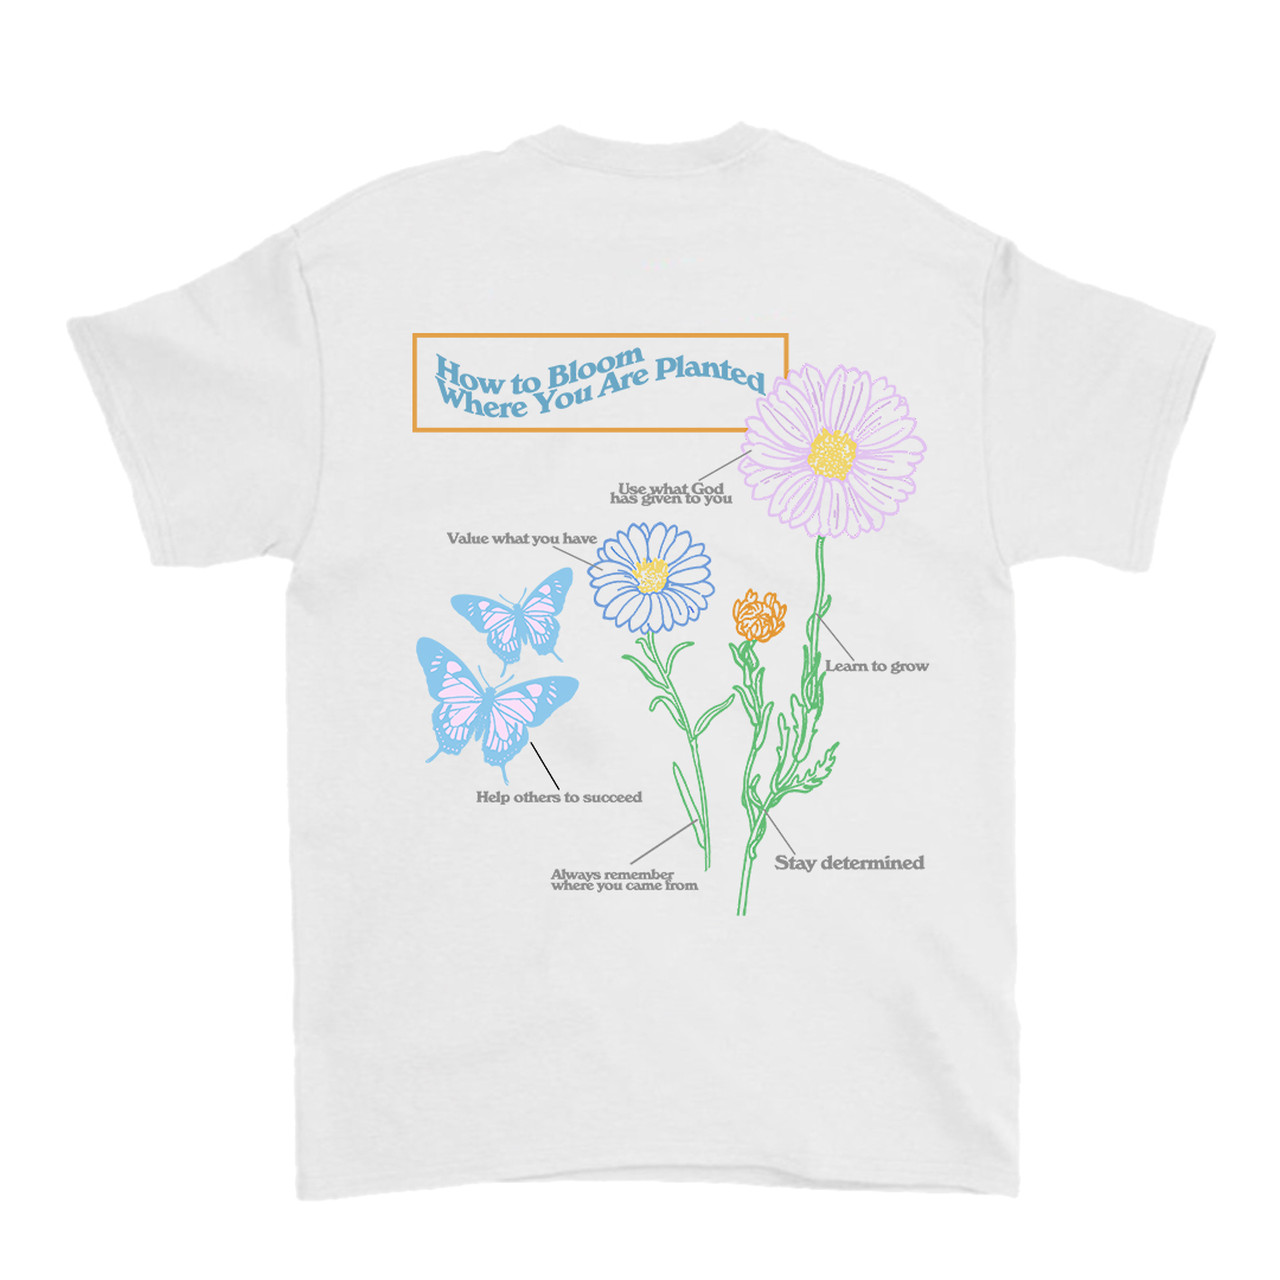 【Cat & Parfum】How to Bloom Where You Are Planted Colorful Tee